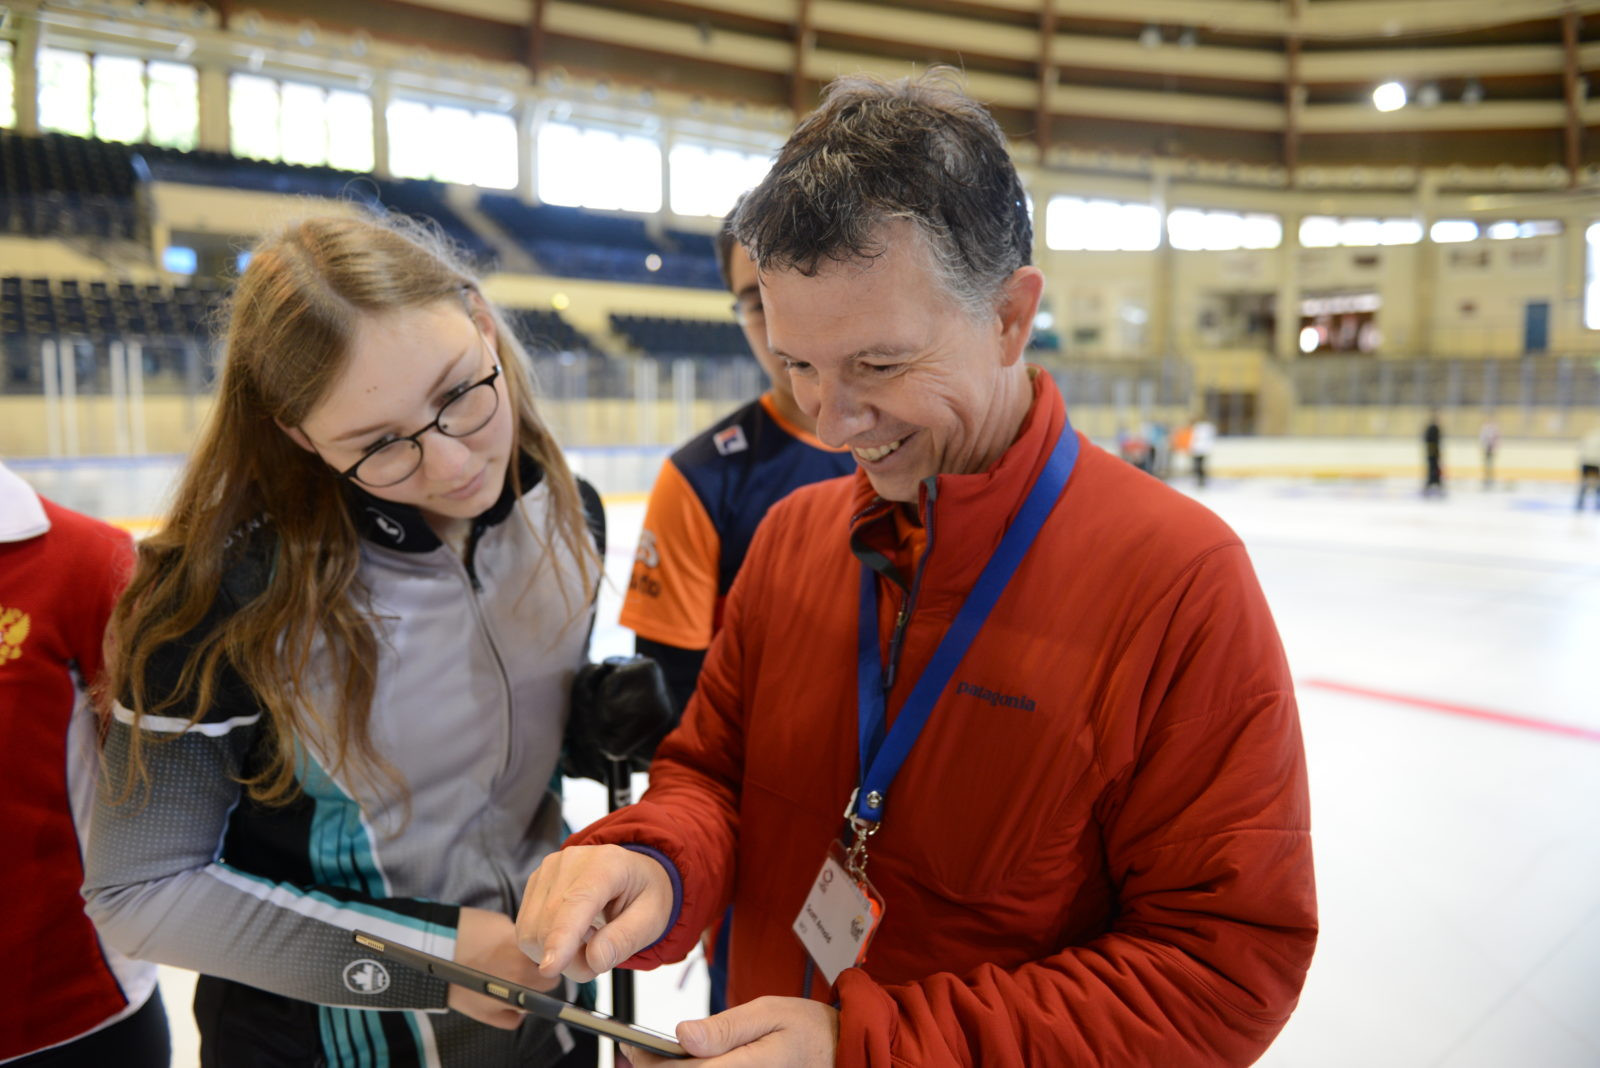 WCF head of development Scott Arnold has revealed his delight at the launch of the World Curling Academy's first online course aimed at teaching a basic knowledge of maintaining curling ice ©WCF